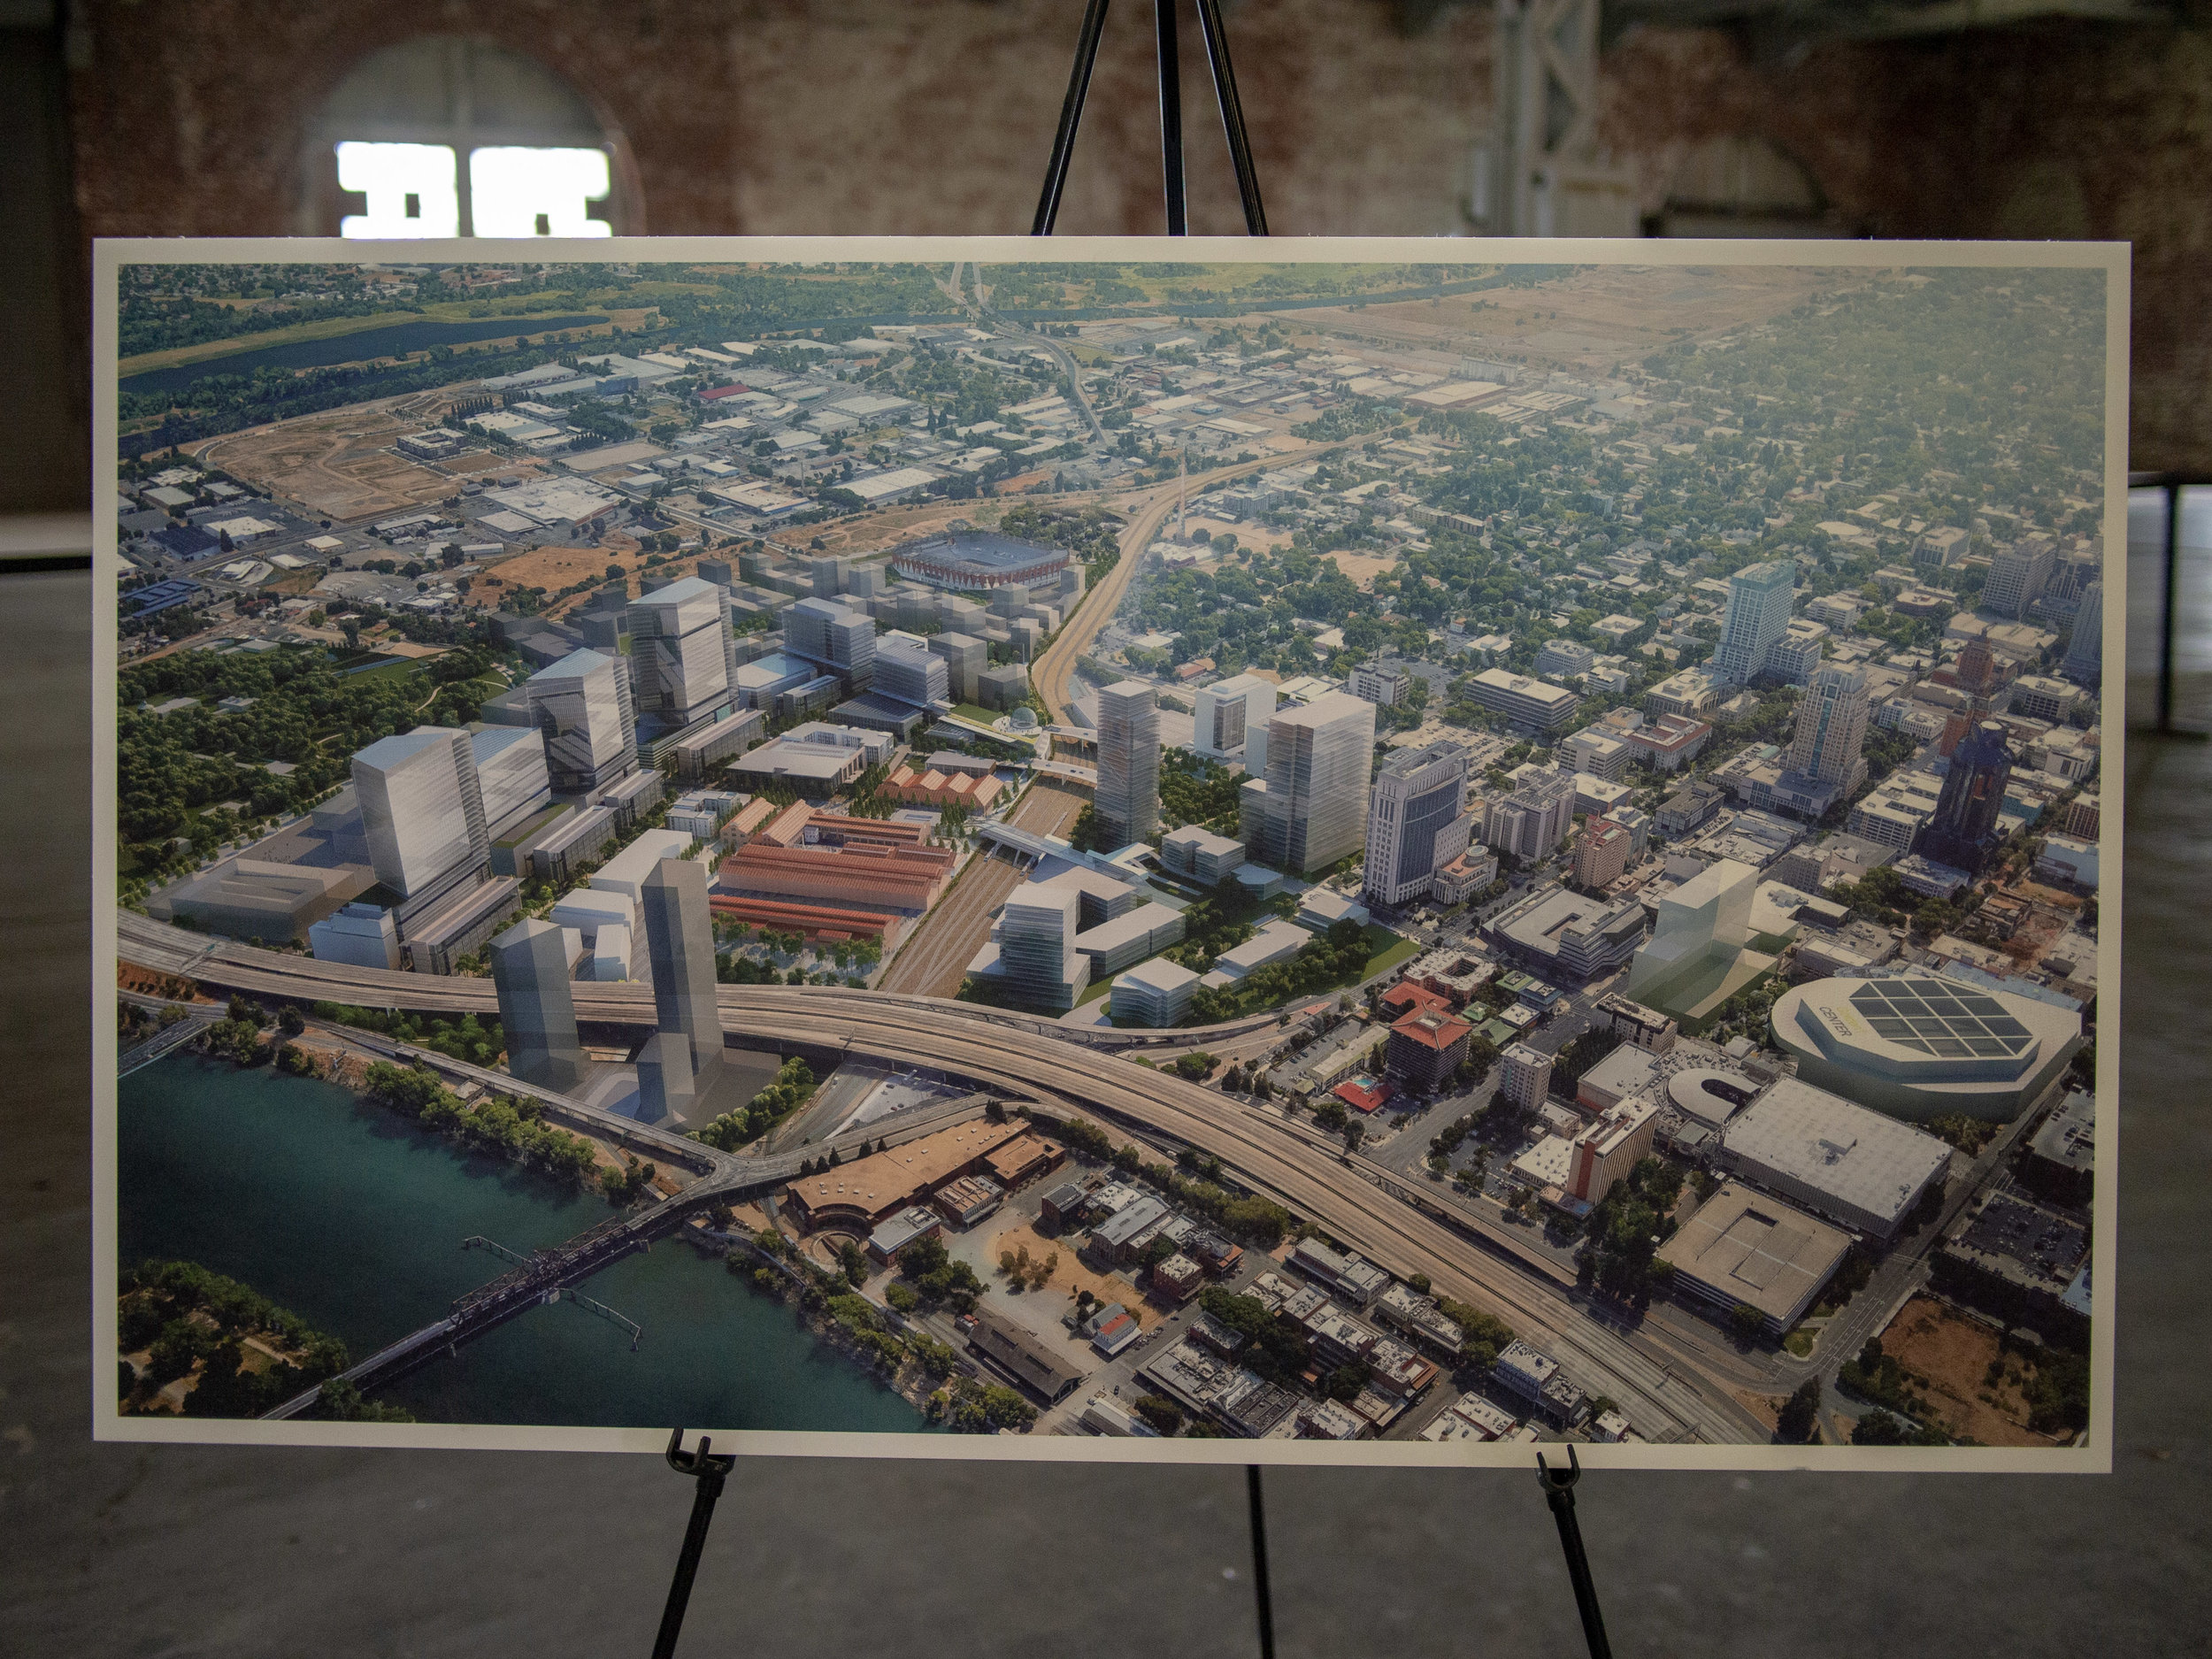 This model of downtown shows development and the Republic FC stadium north of the existing downtown.